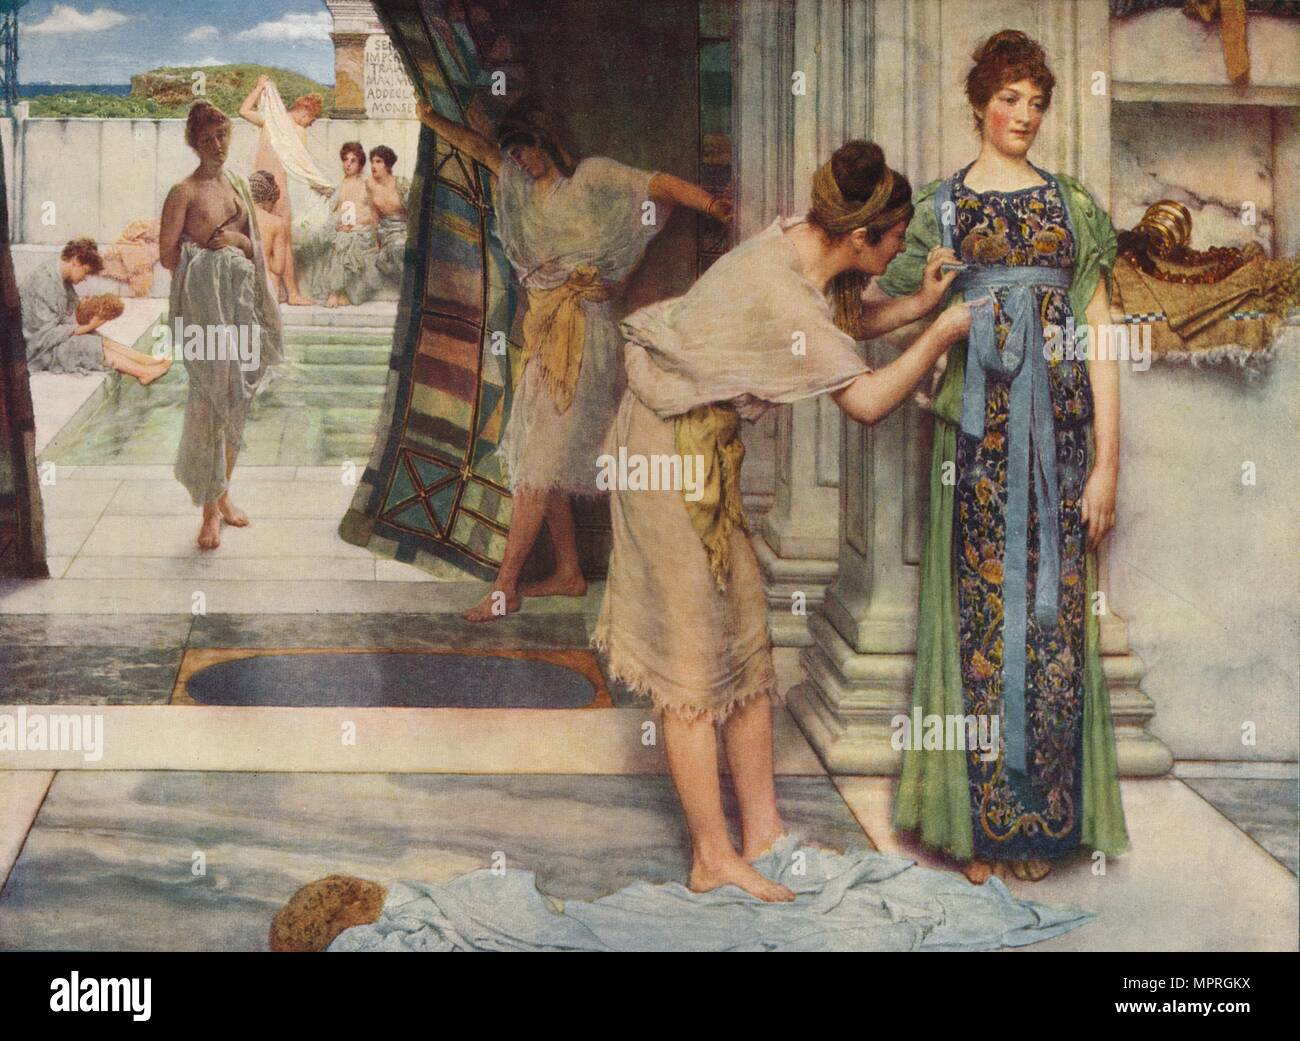 'The Frigidarium', 1890, (c1915). Artist: Sir Lawrence Alma-Tadema. - Stock Image